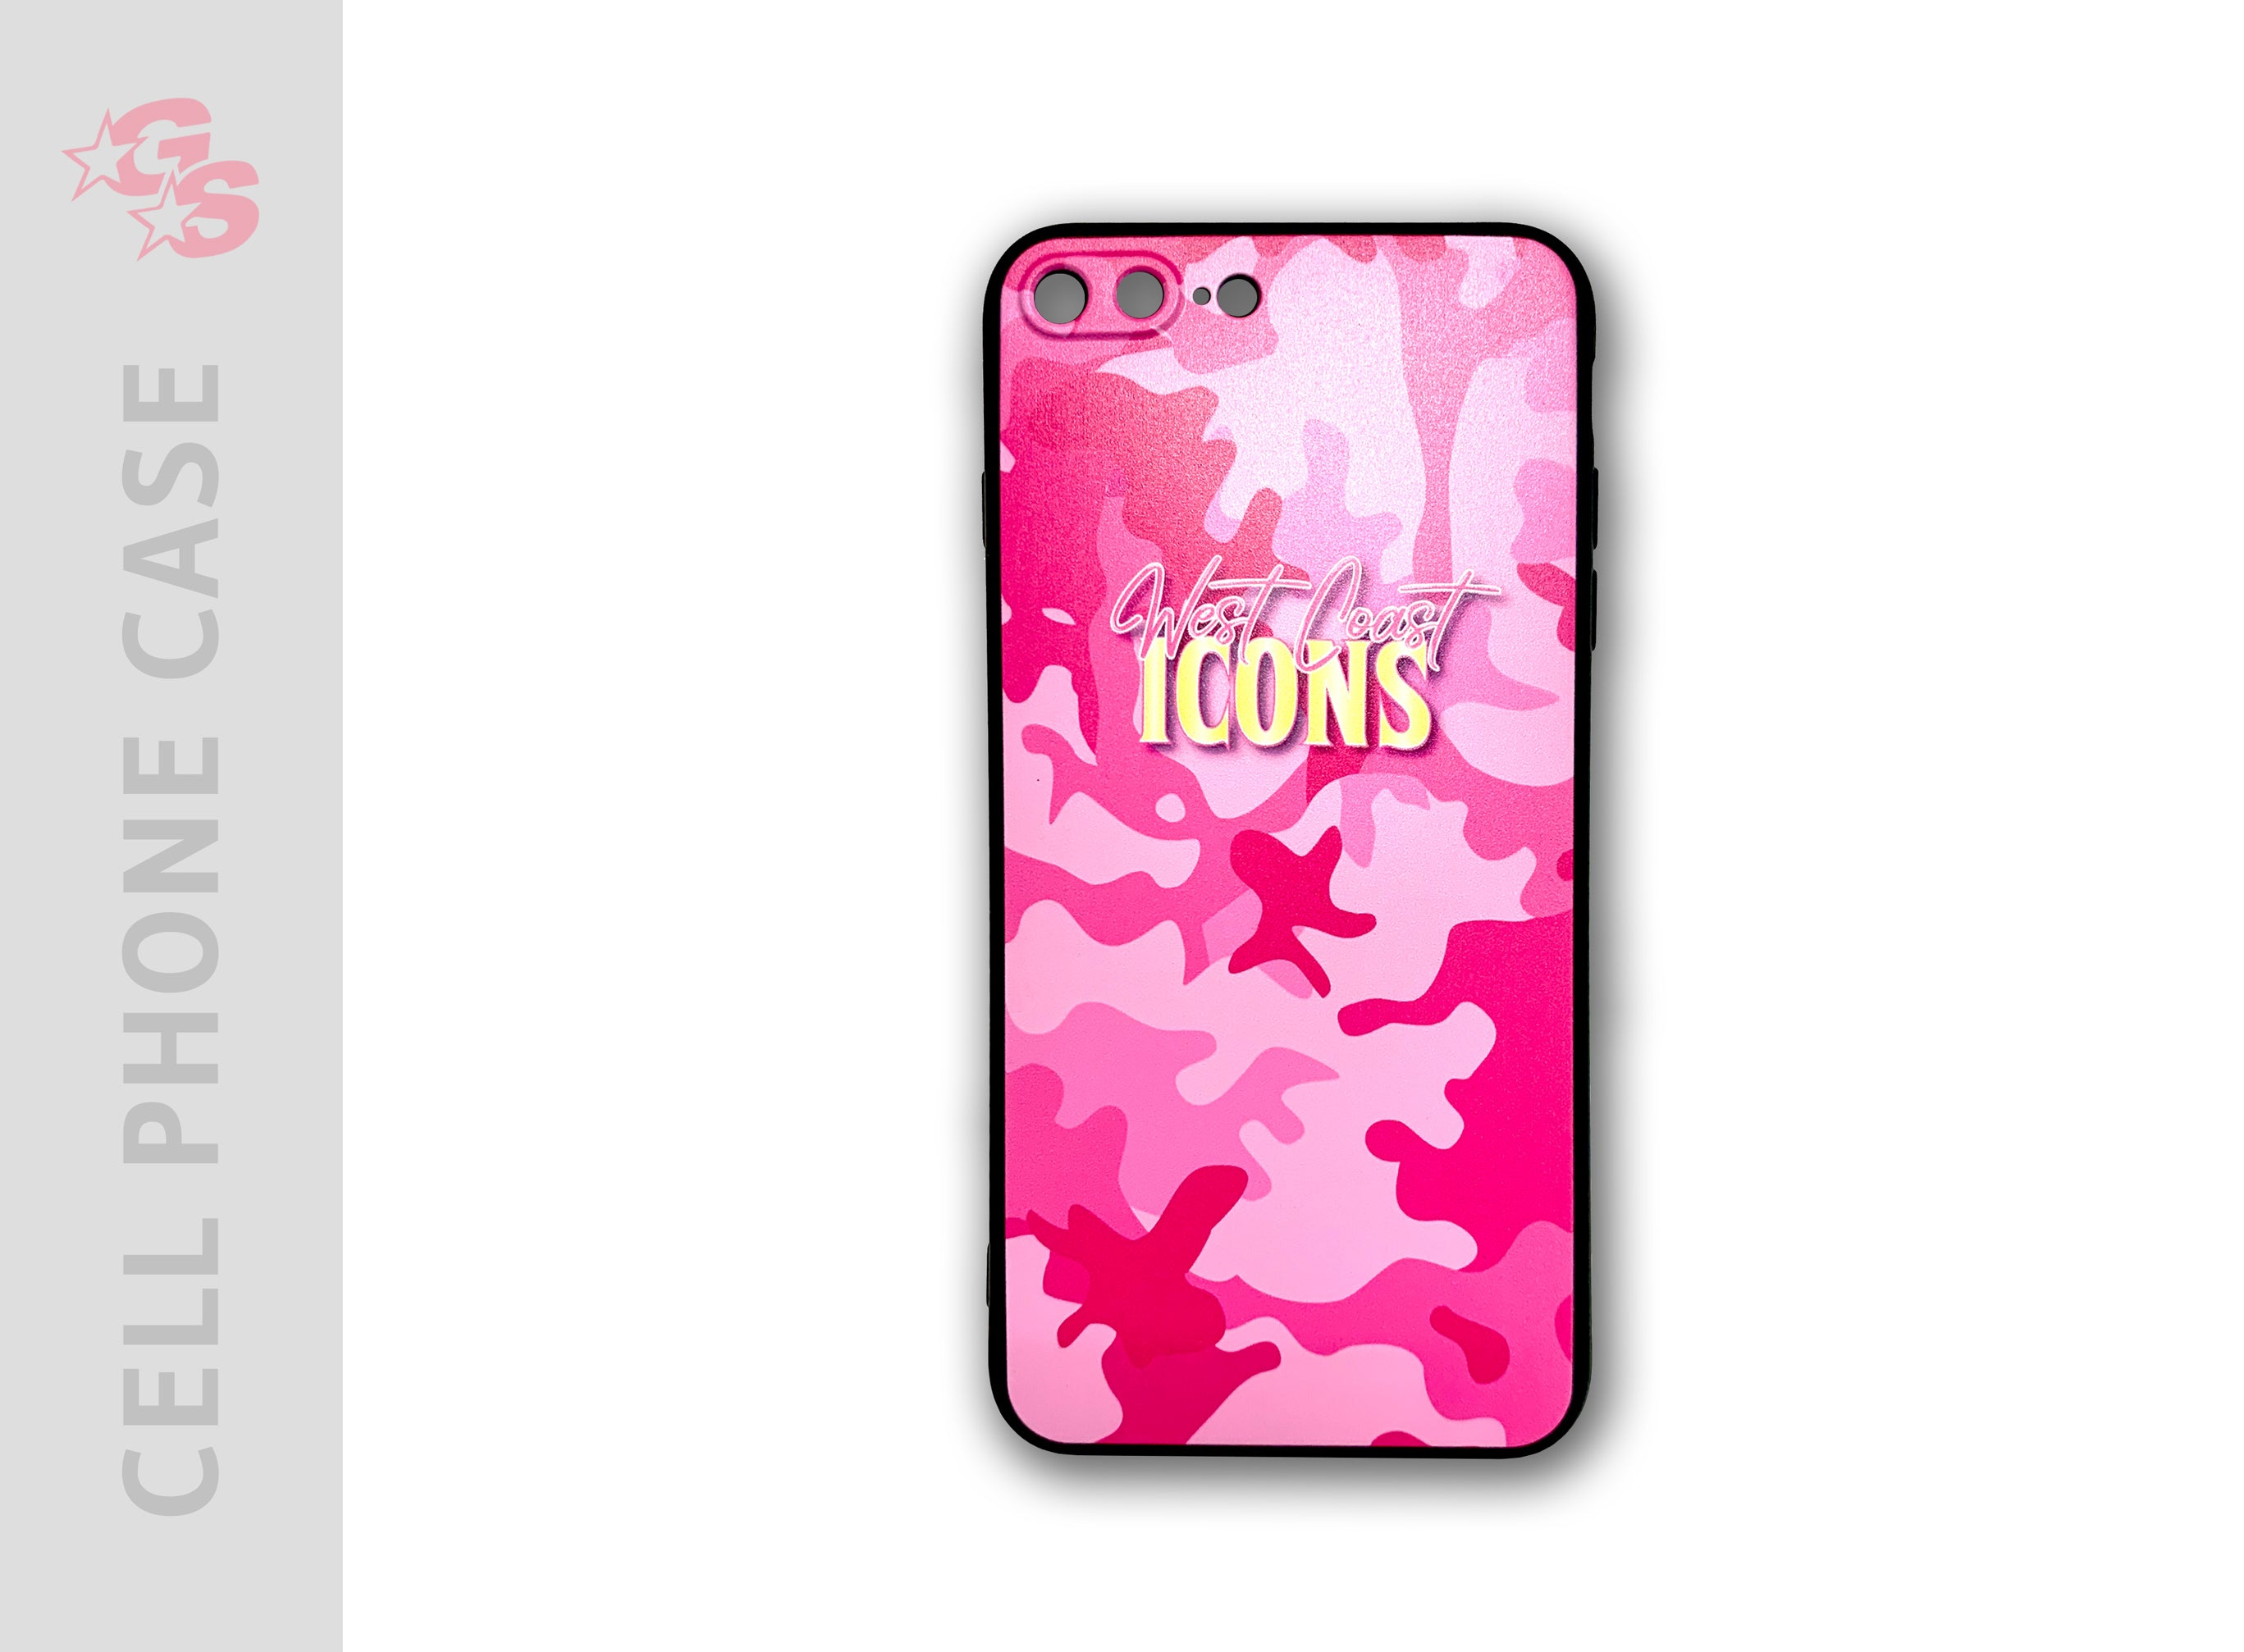 West Coast Icons Cell Phone Case